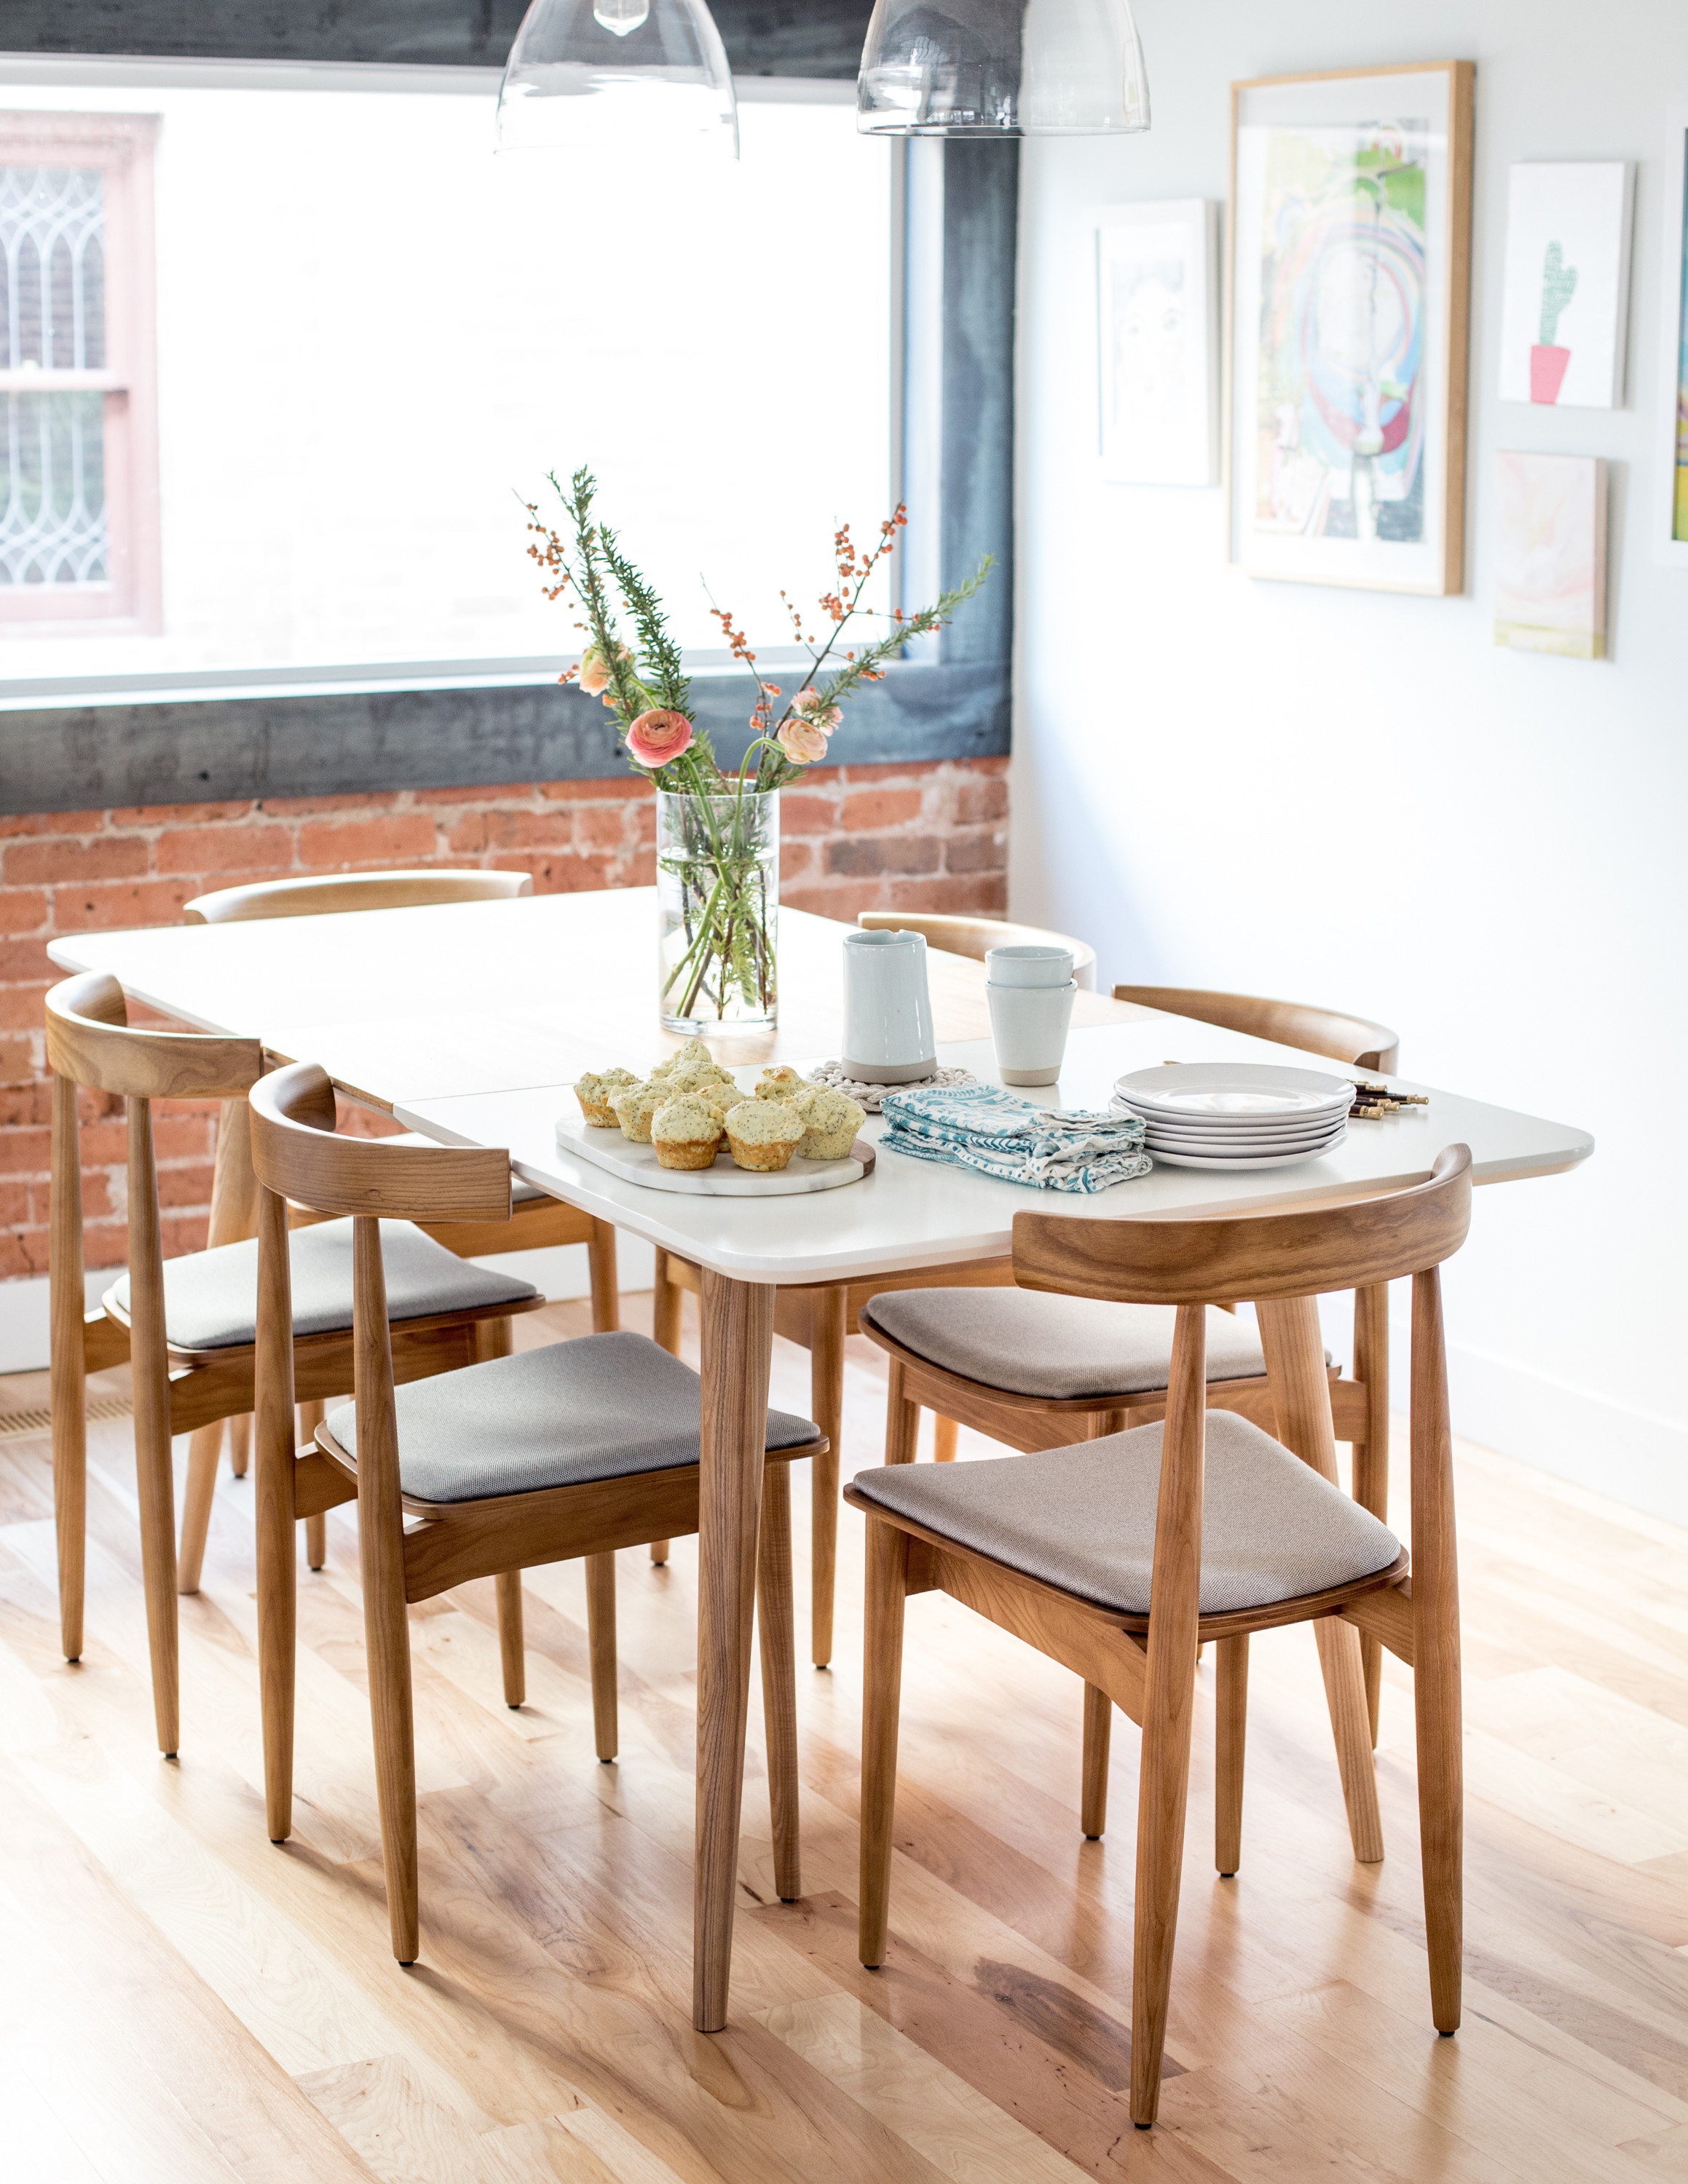 Best ideas about Mid Century Modern Dining Table . Save or Pin Mid Century Modern Dining Table and Chairs Flax & Twine Now.